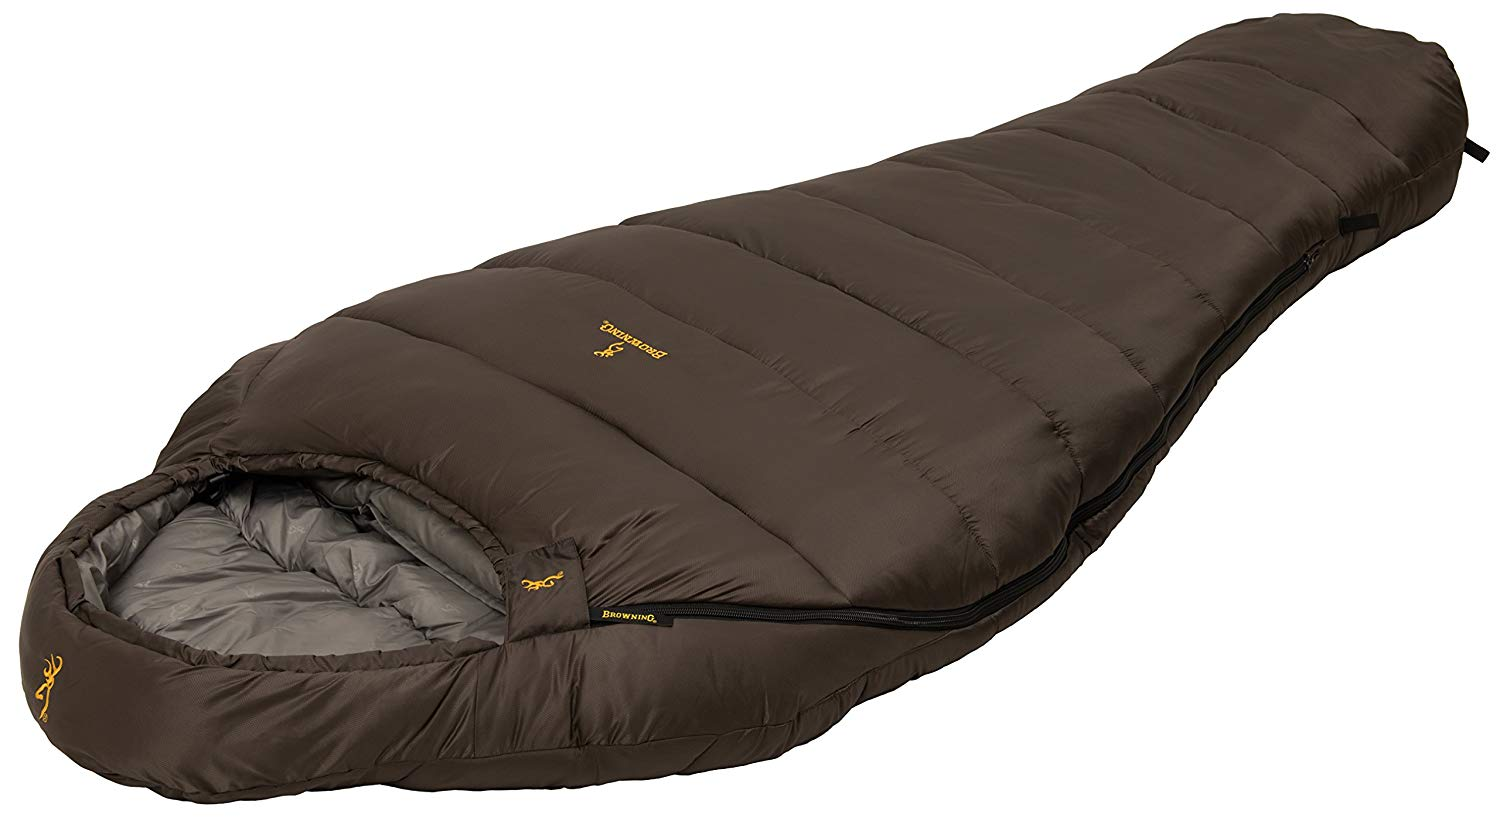 An image related to Browning Denali 4857217 0 Degree Sleeping Bag